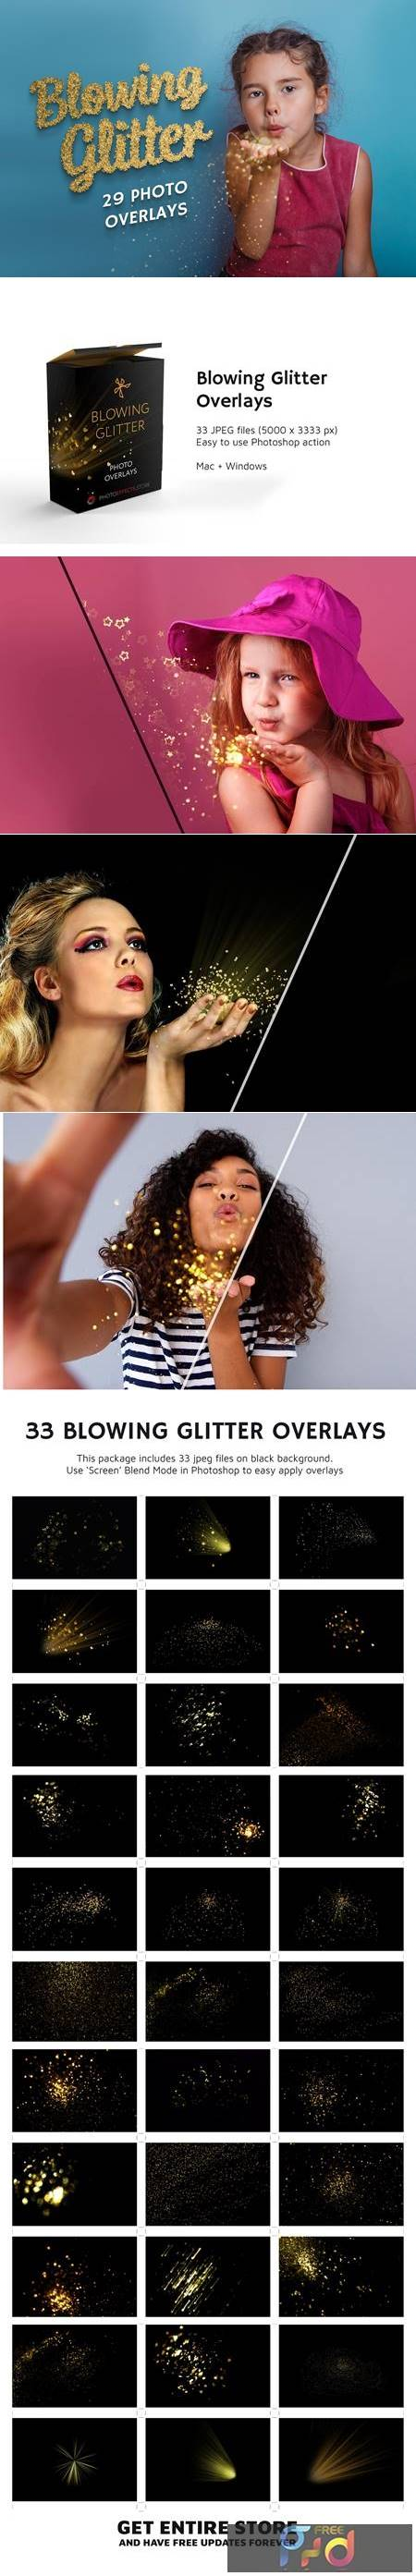 29 Blowing Glitter Photo Overlays 5224211 1